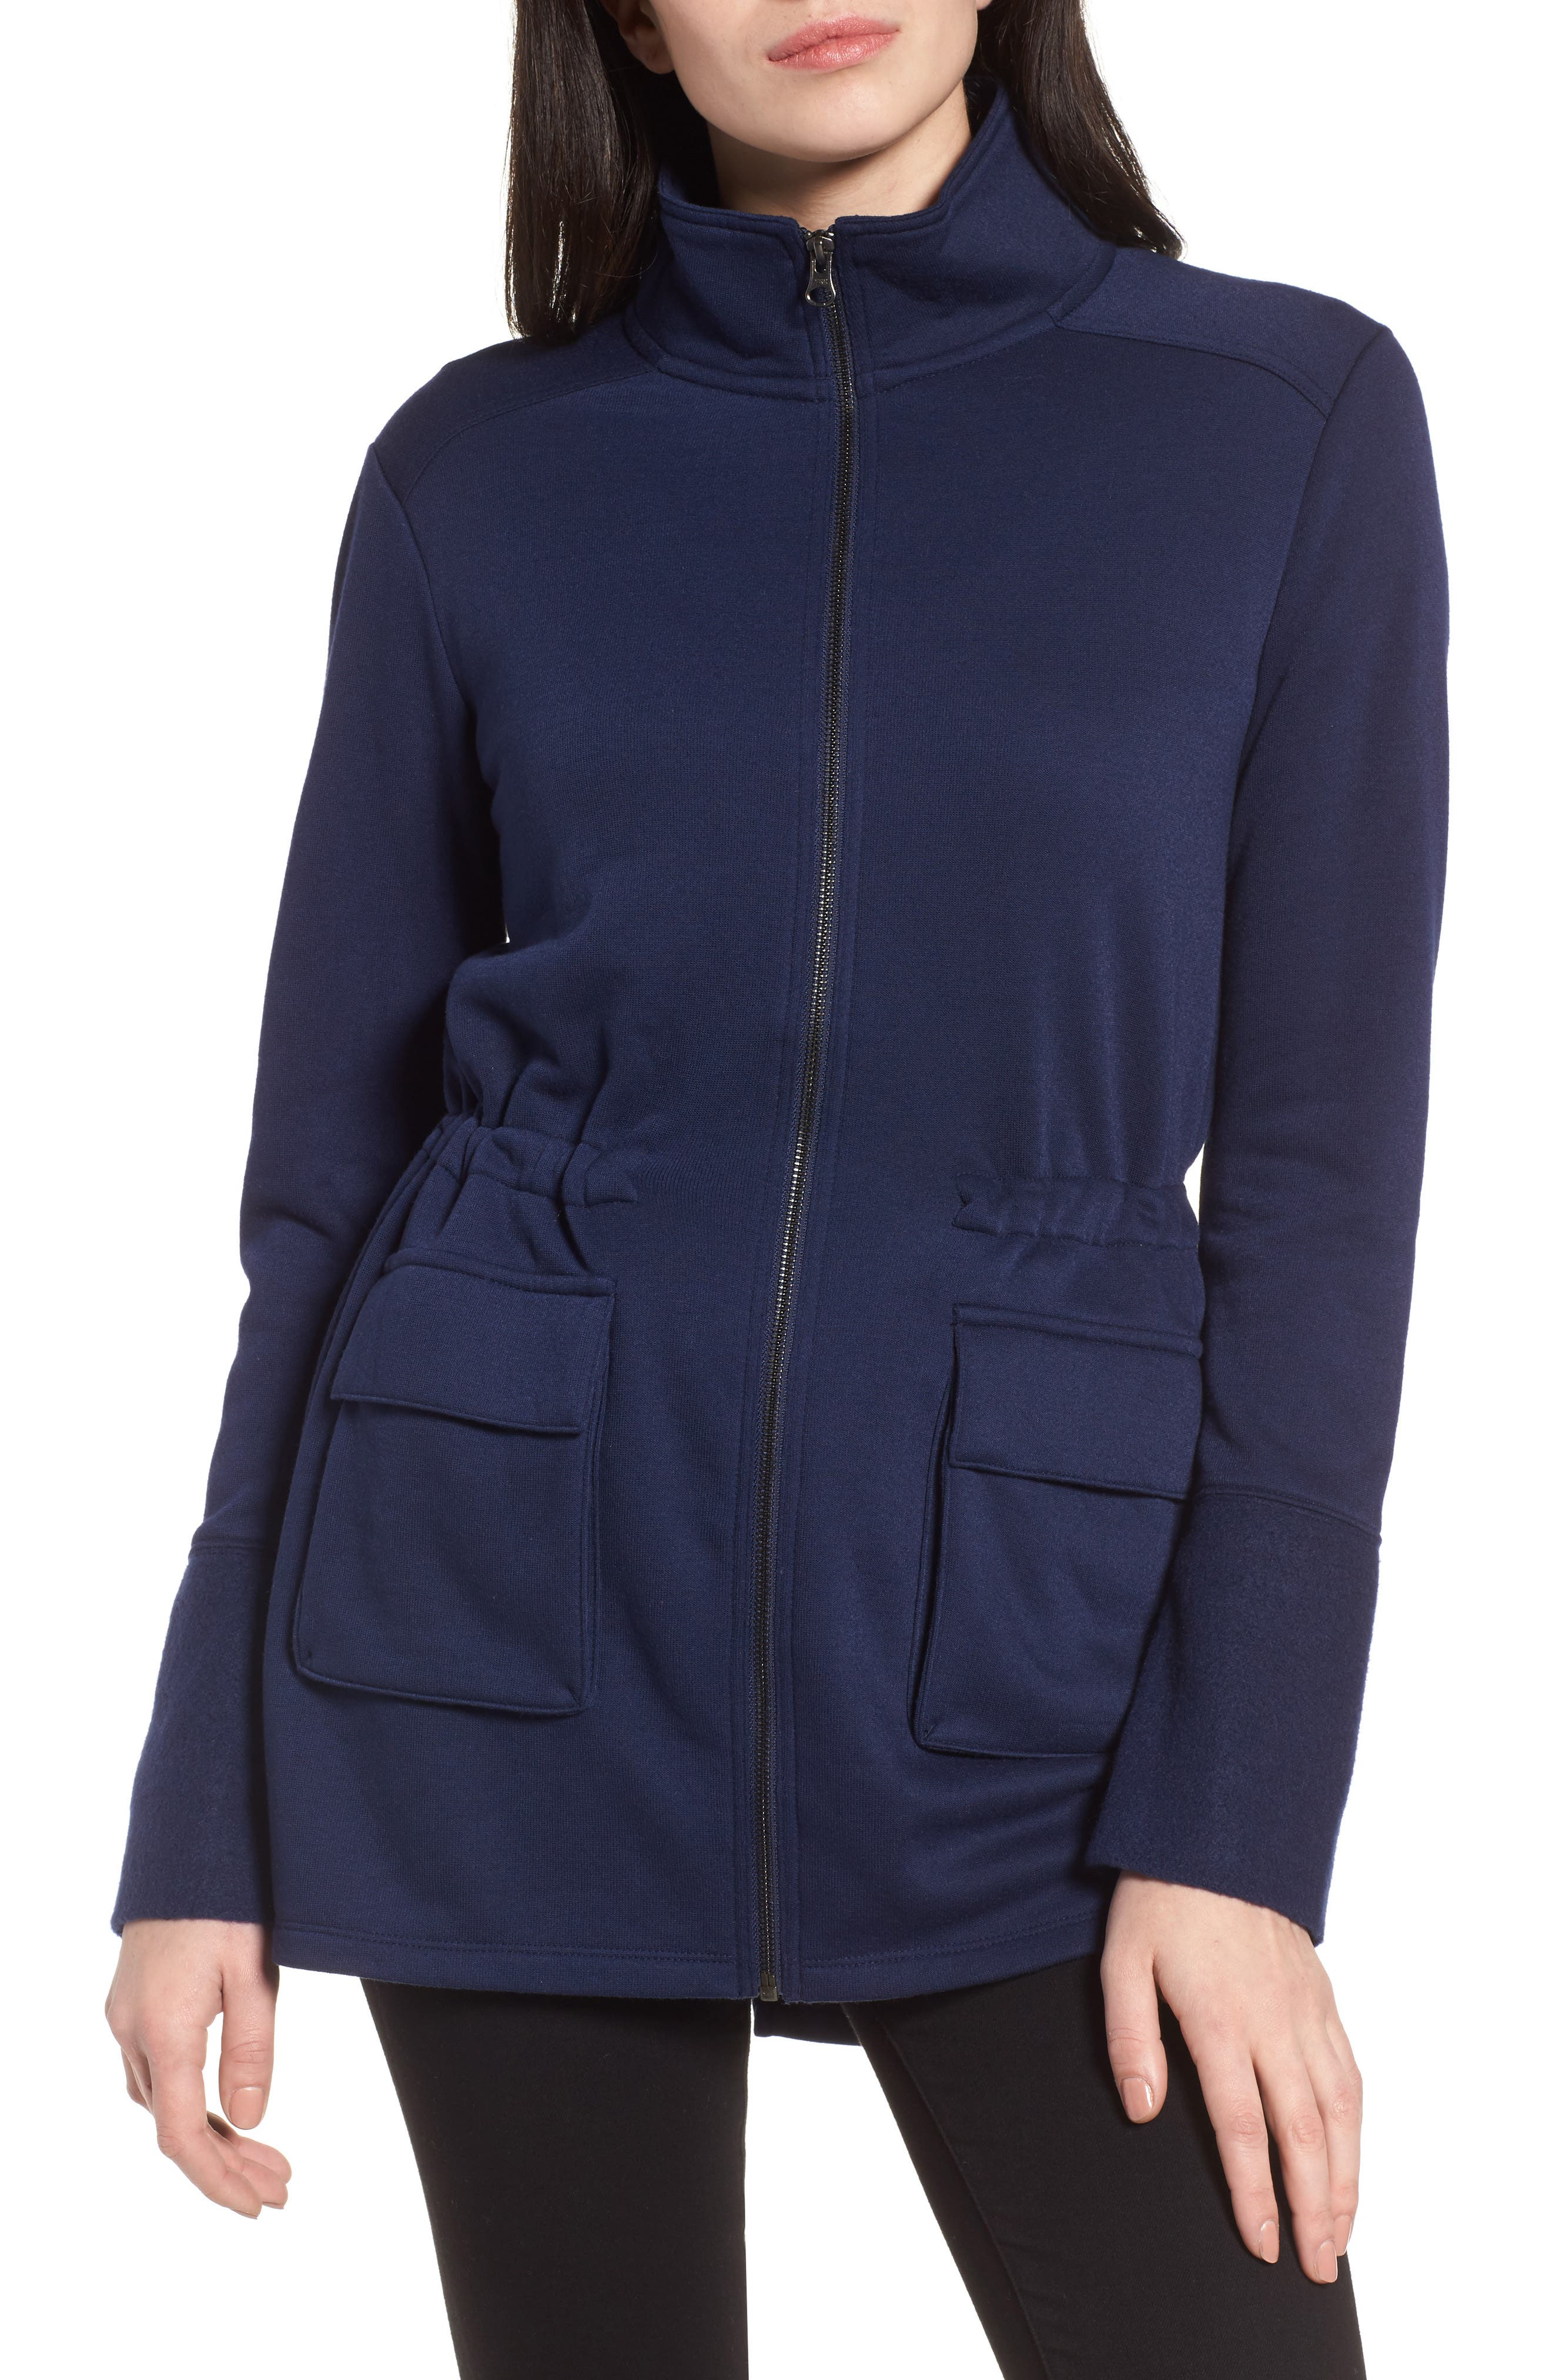 Gathered Waist Front Zip Jacket,                             Alternate thumbnail 4, color,                             Navy Peacoat